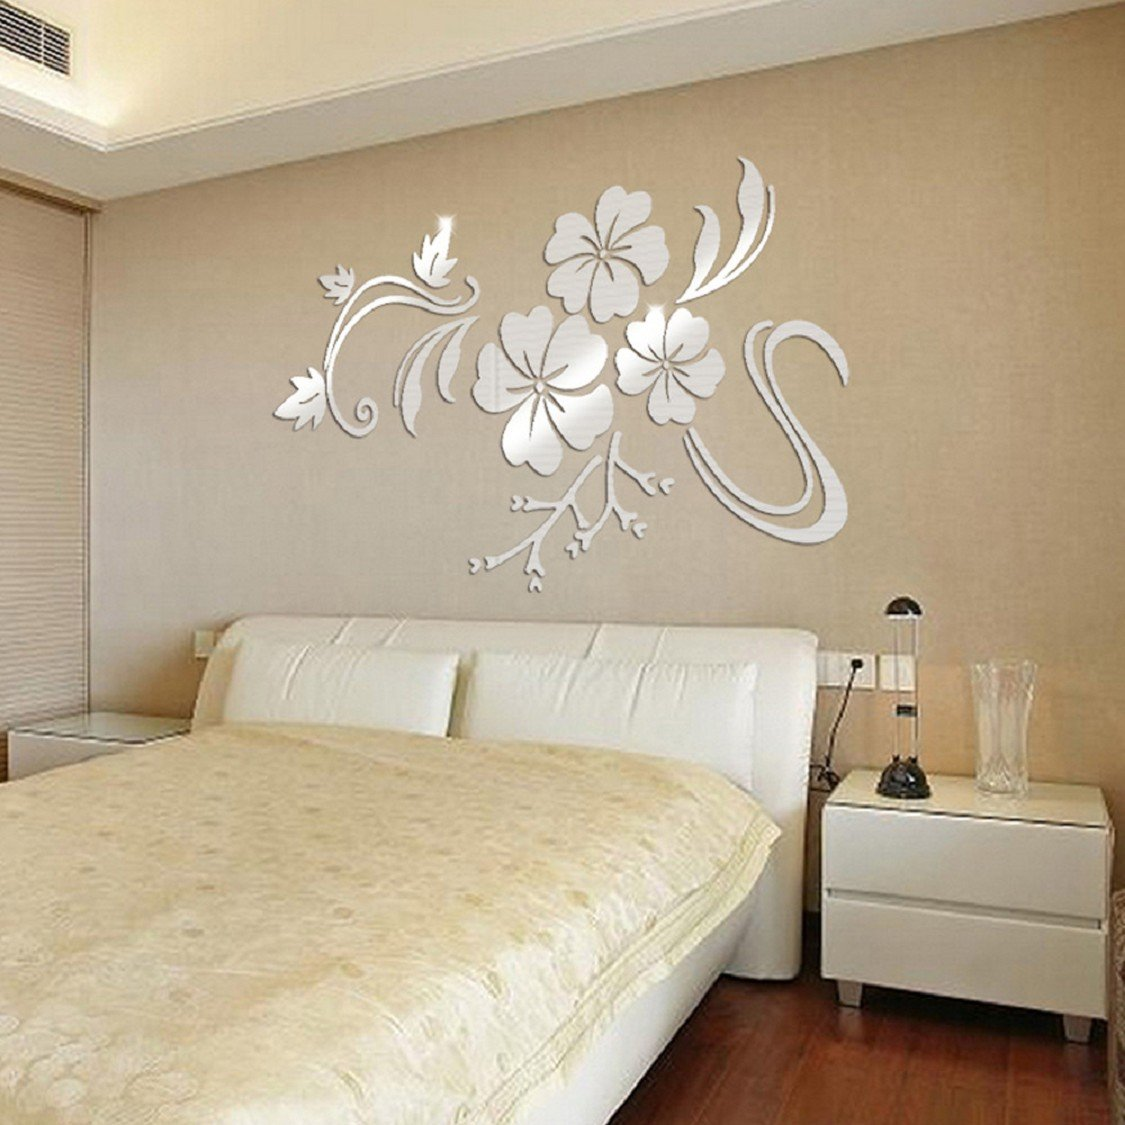 Superieur Ikevan 1Set Acrylic Art 3D Mirror Flower Wall Stickers DIY Home Wall Room  Decals Decor Sofa TV Setting Wall Removable Wall Stickers 78X60cm (Sliver)  ...